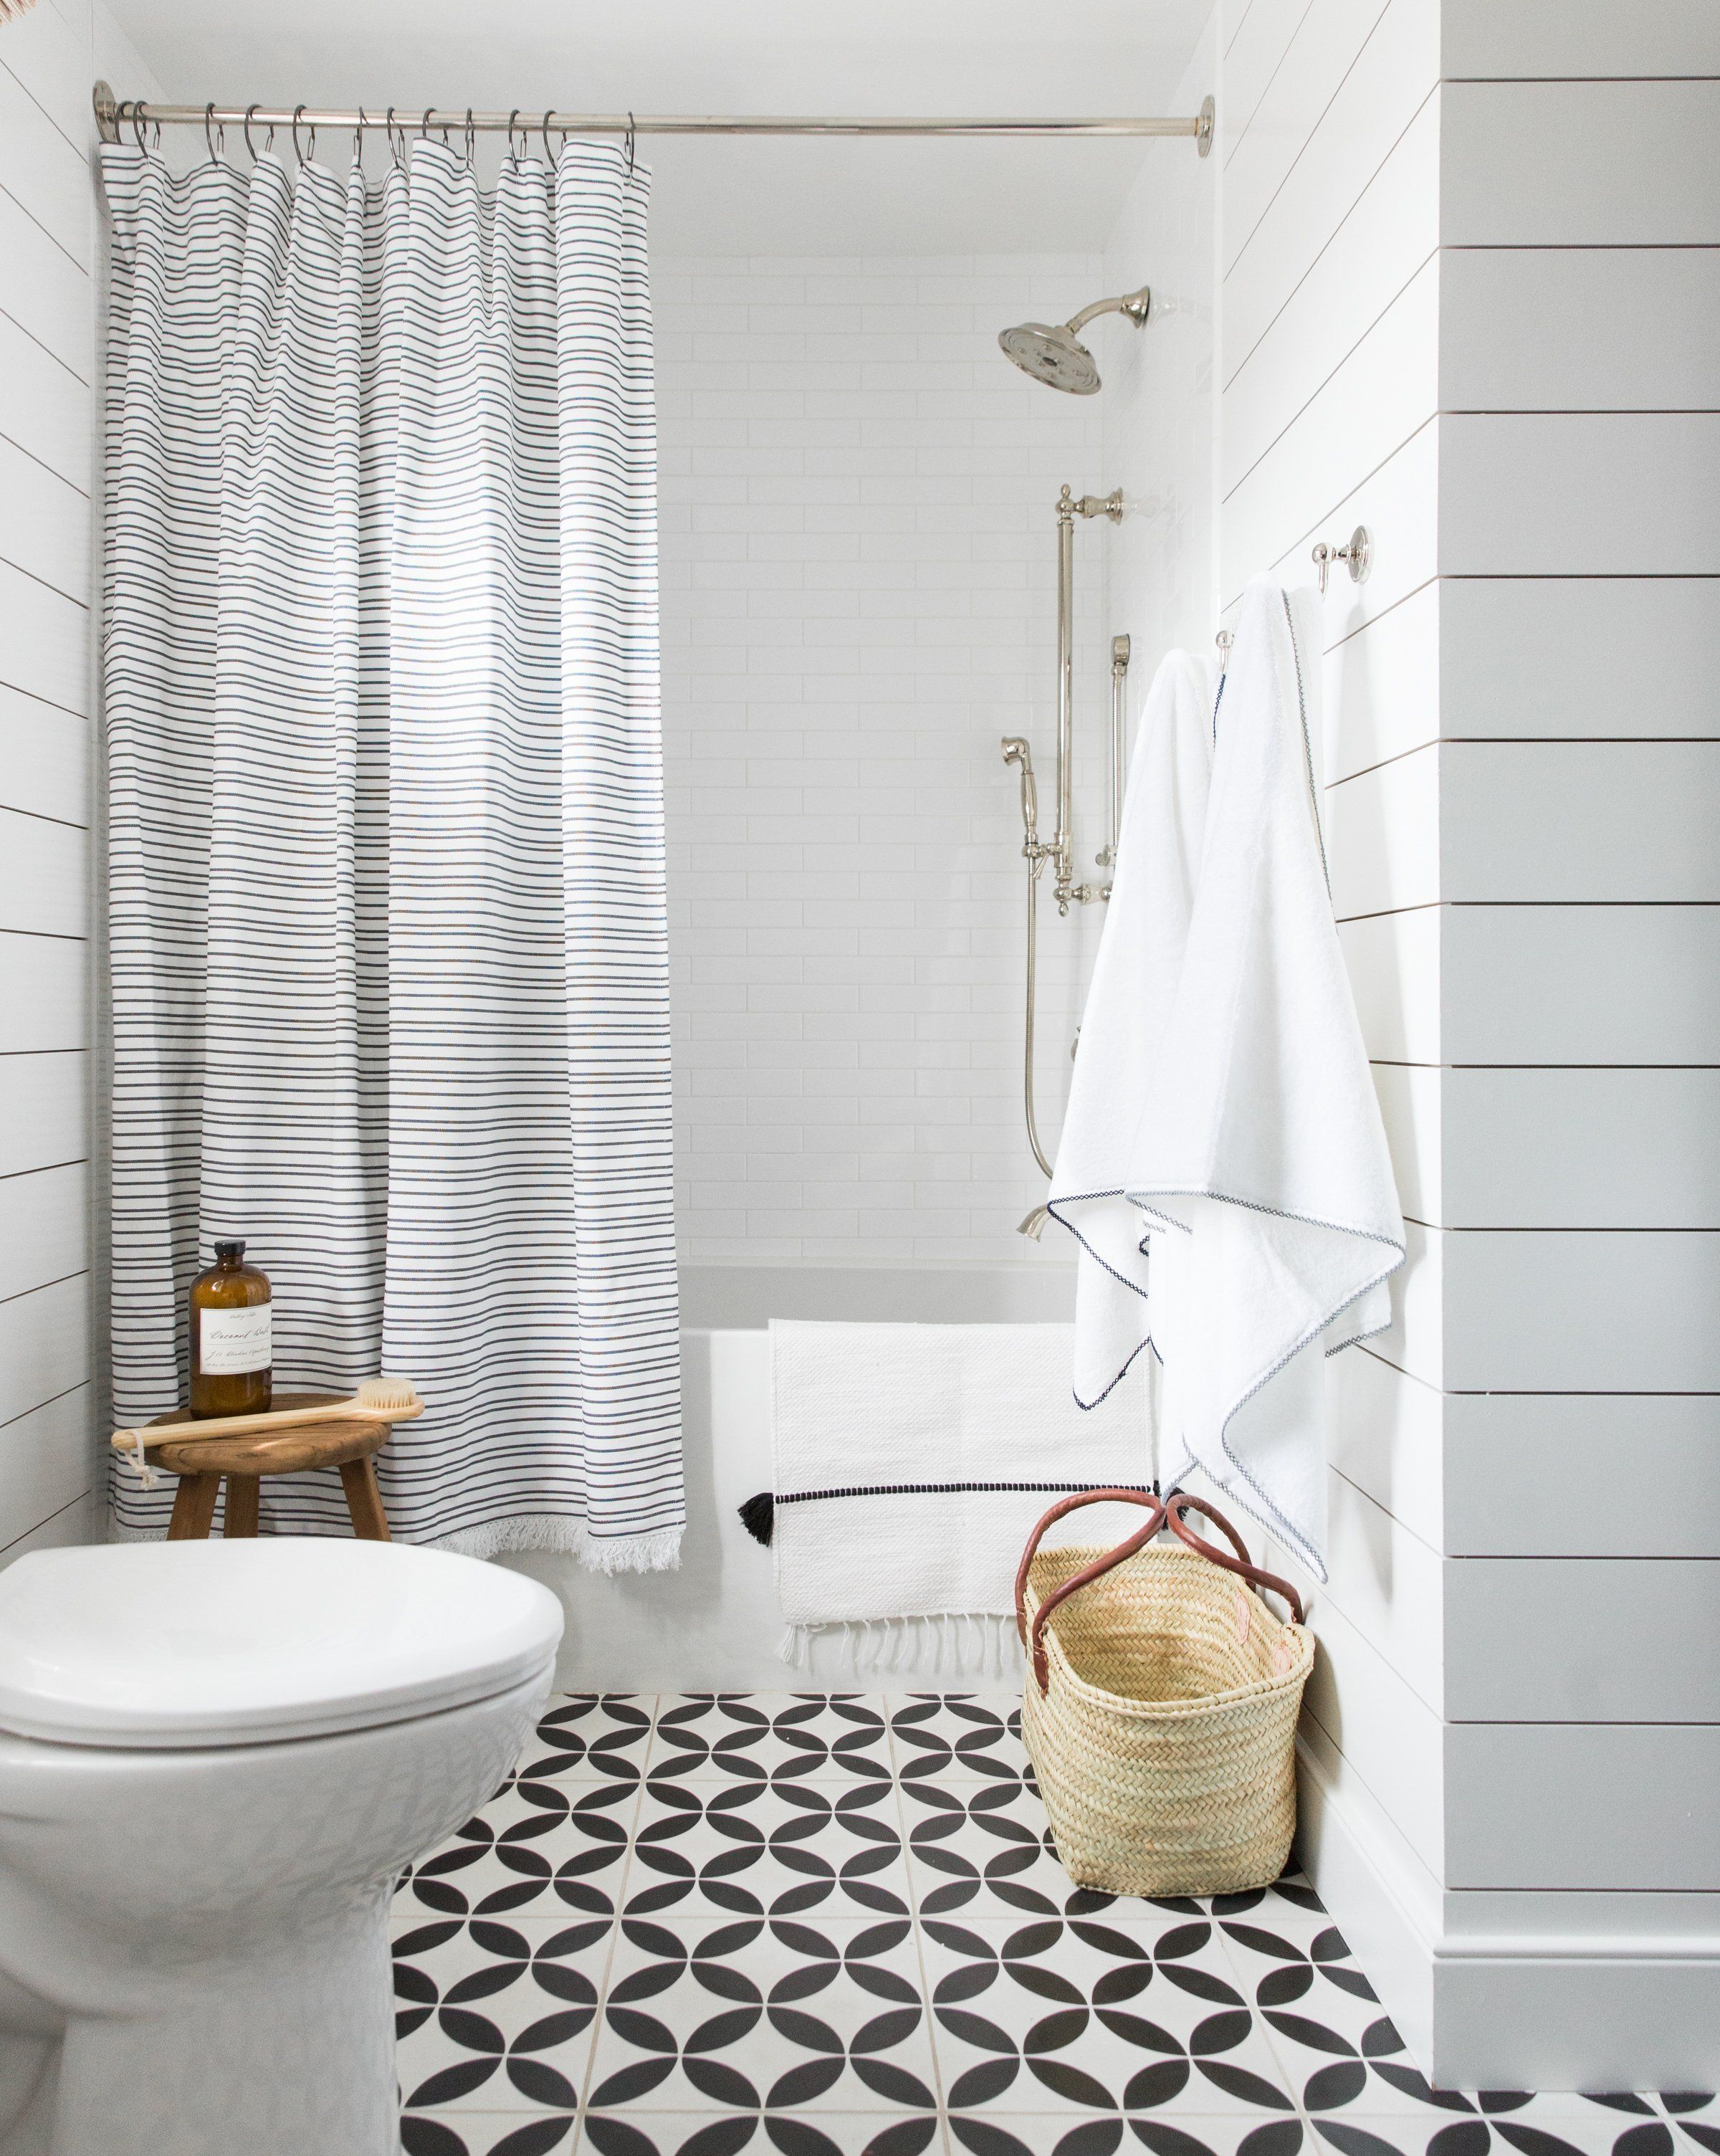 One Part That Can Make Your Scandinavian Bathroom Look More Attractive Is The Shower Curta Bathroom Shower Curtains Unique Shower Curtain Bathroom Tile Designs